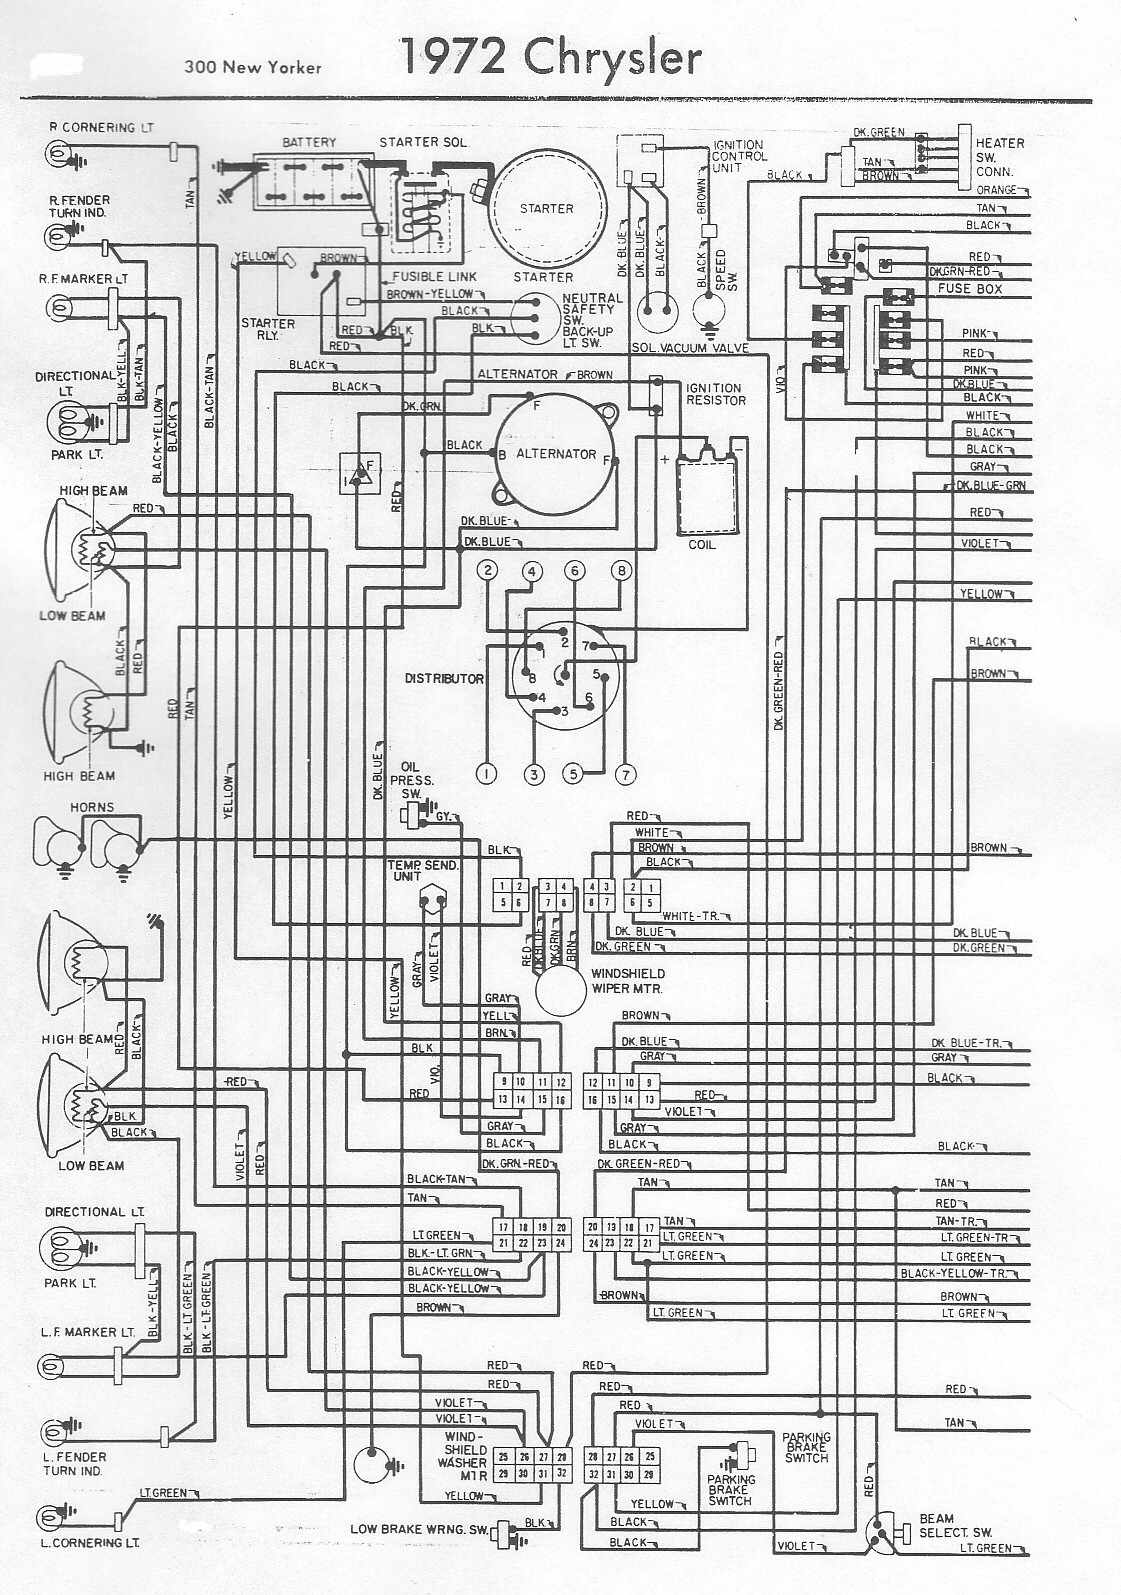 medium resolution of fuse box diagram for a 2005 chrysler 300 limited starting know fuse box on a 2008